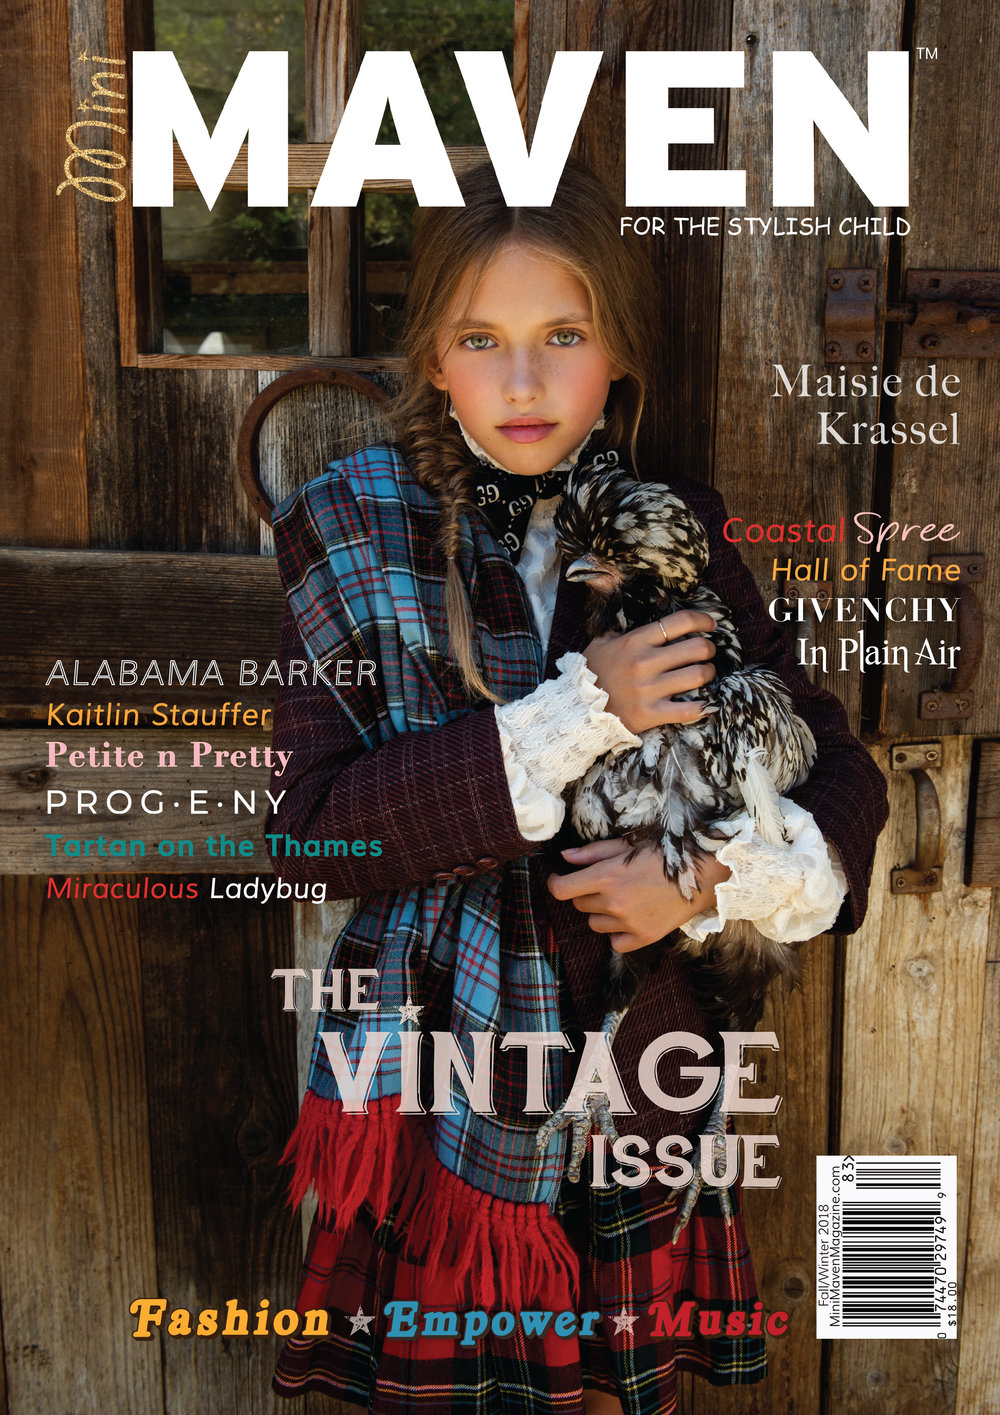 THE VINTAGE ISSUE FRONT COVER.jpg